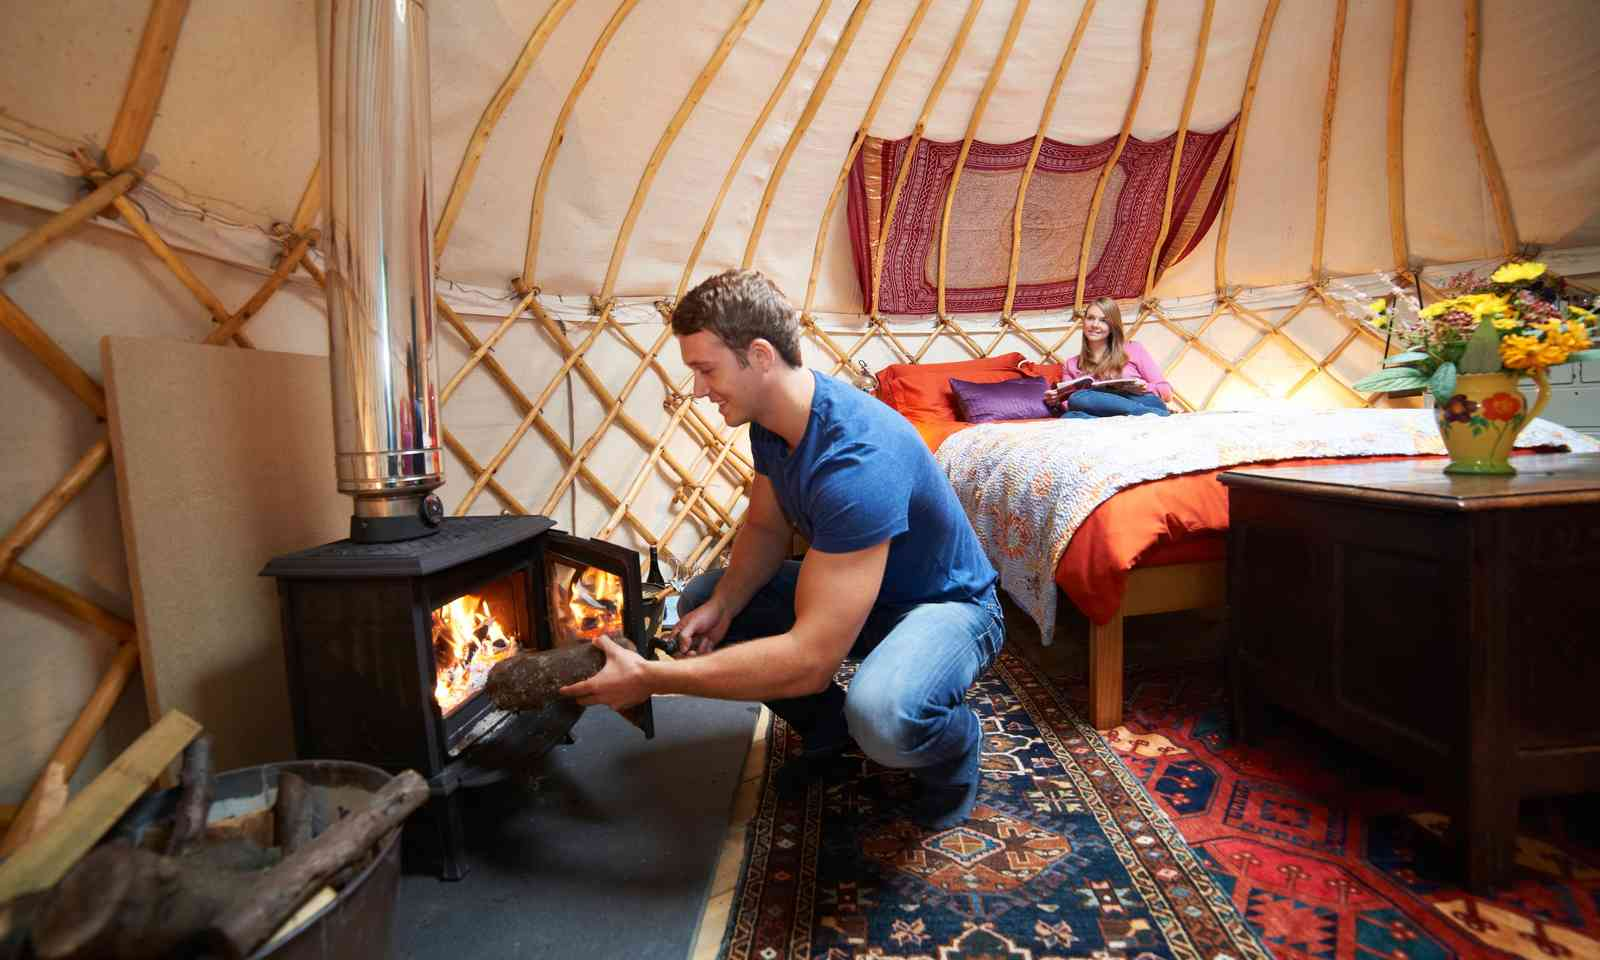 Firing up the log burner in a yurt (Dreamstime)